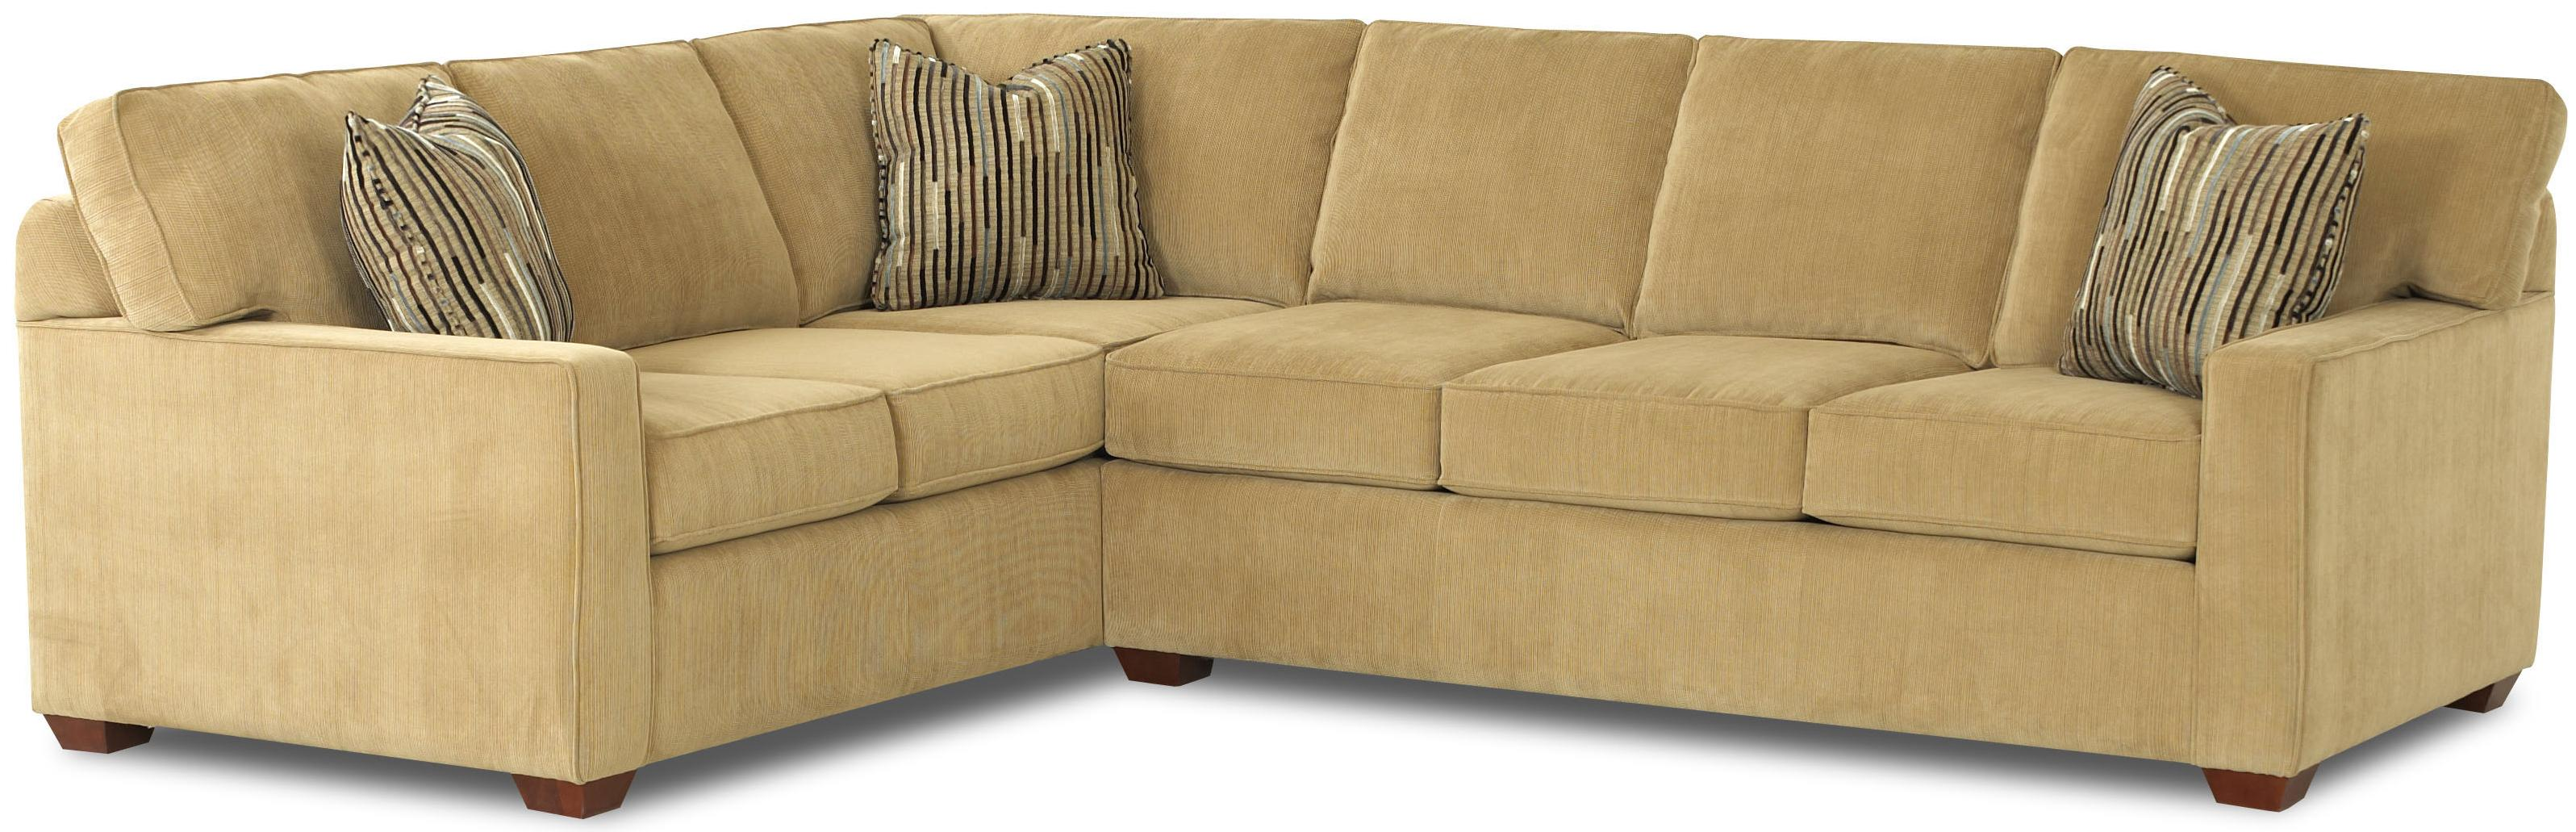 modern sofa l shape broyhill sets shaped contemporary sectional by klaussner wolf and